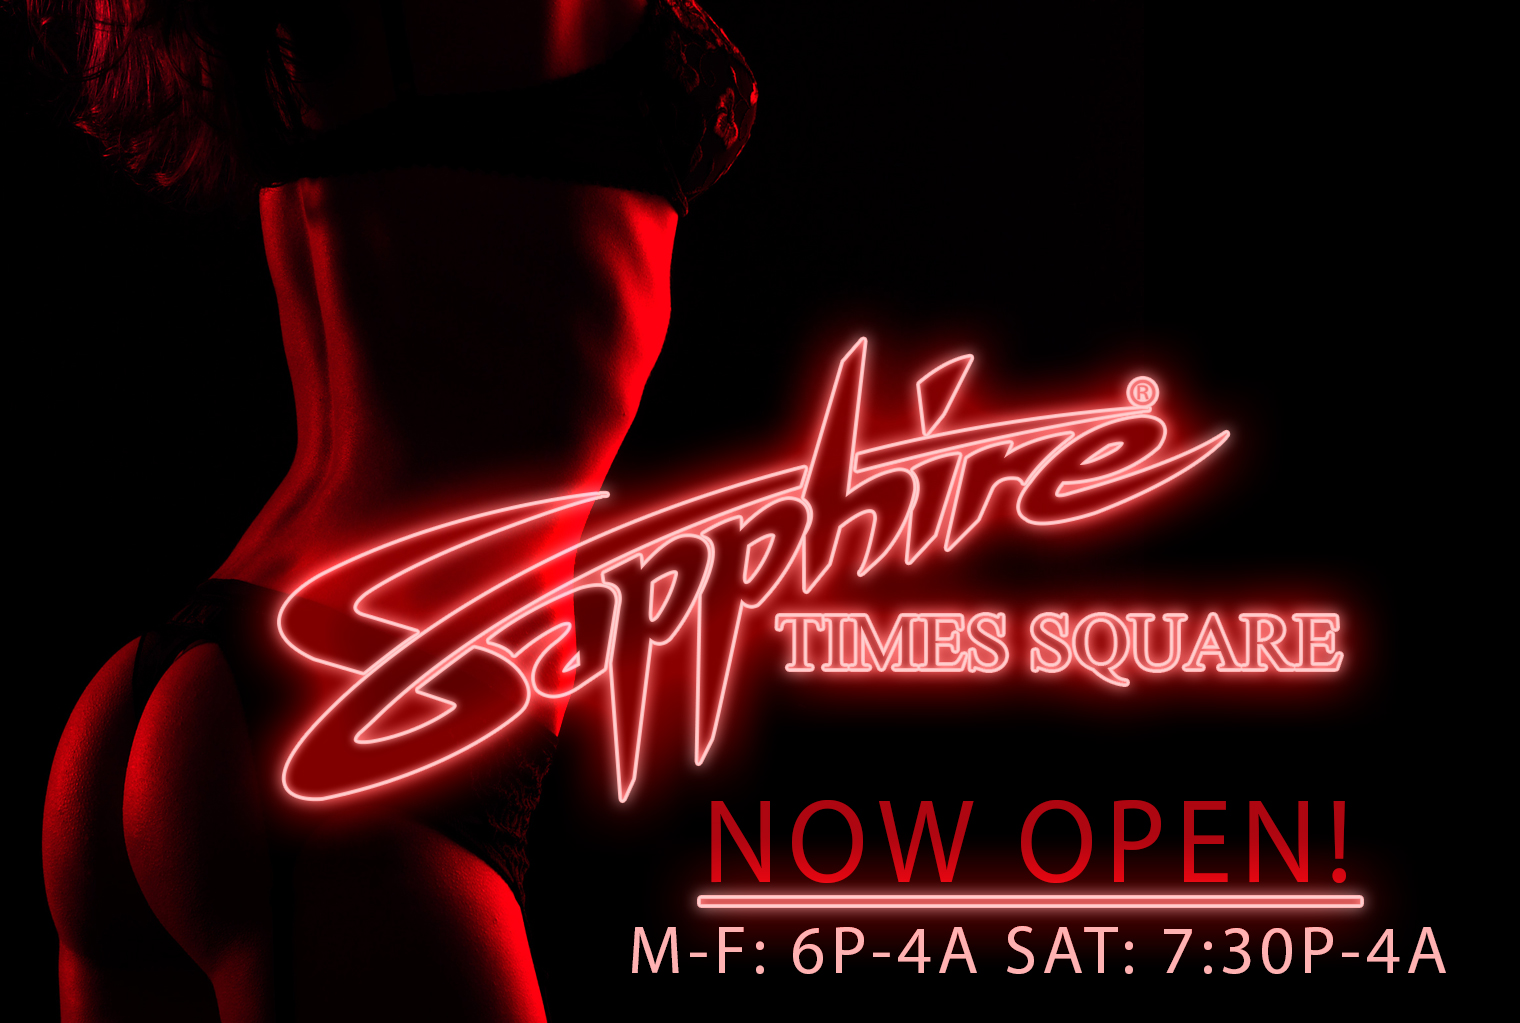 The All New Sapphire Times Square Opening 2019